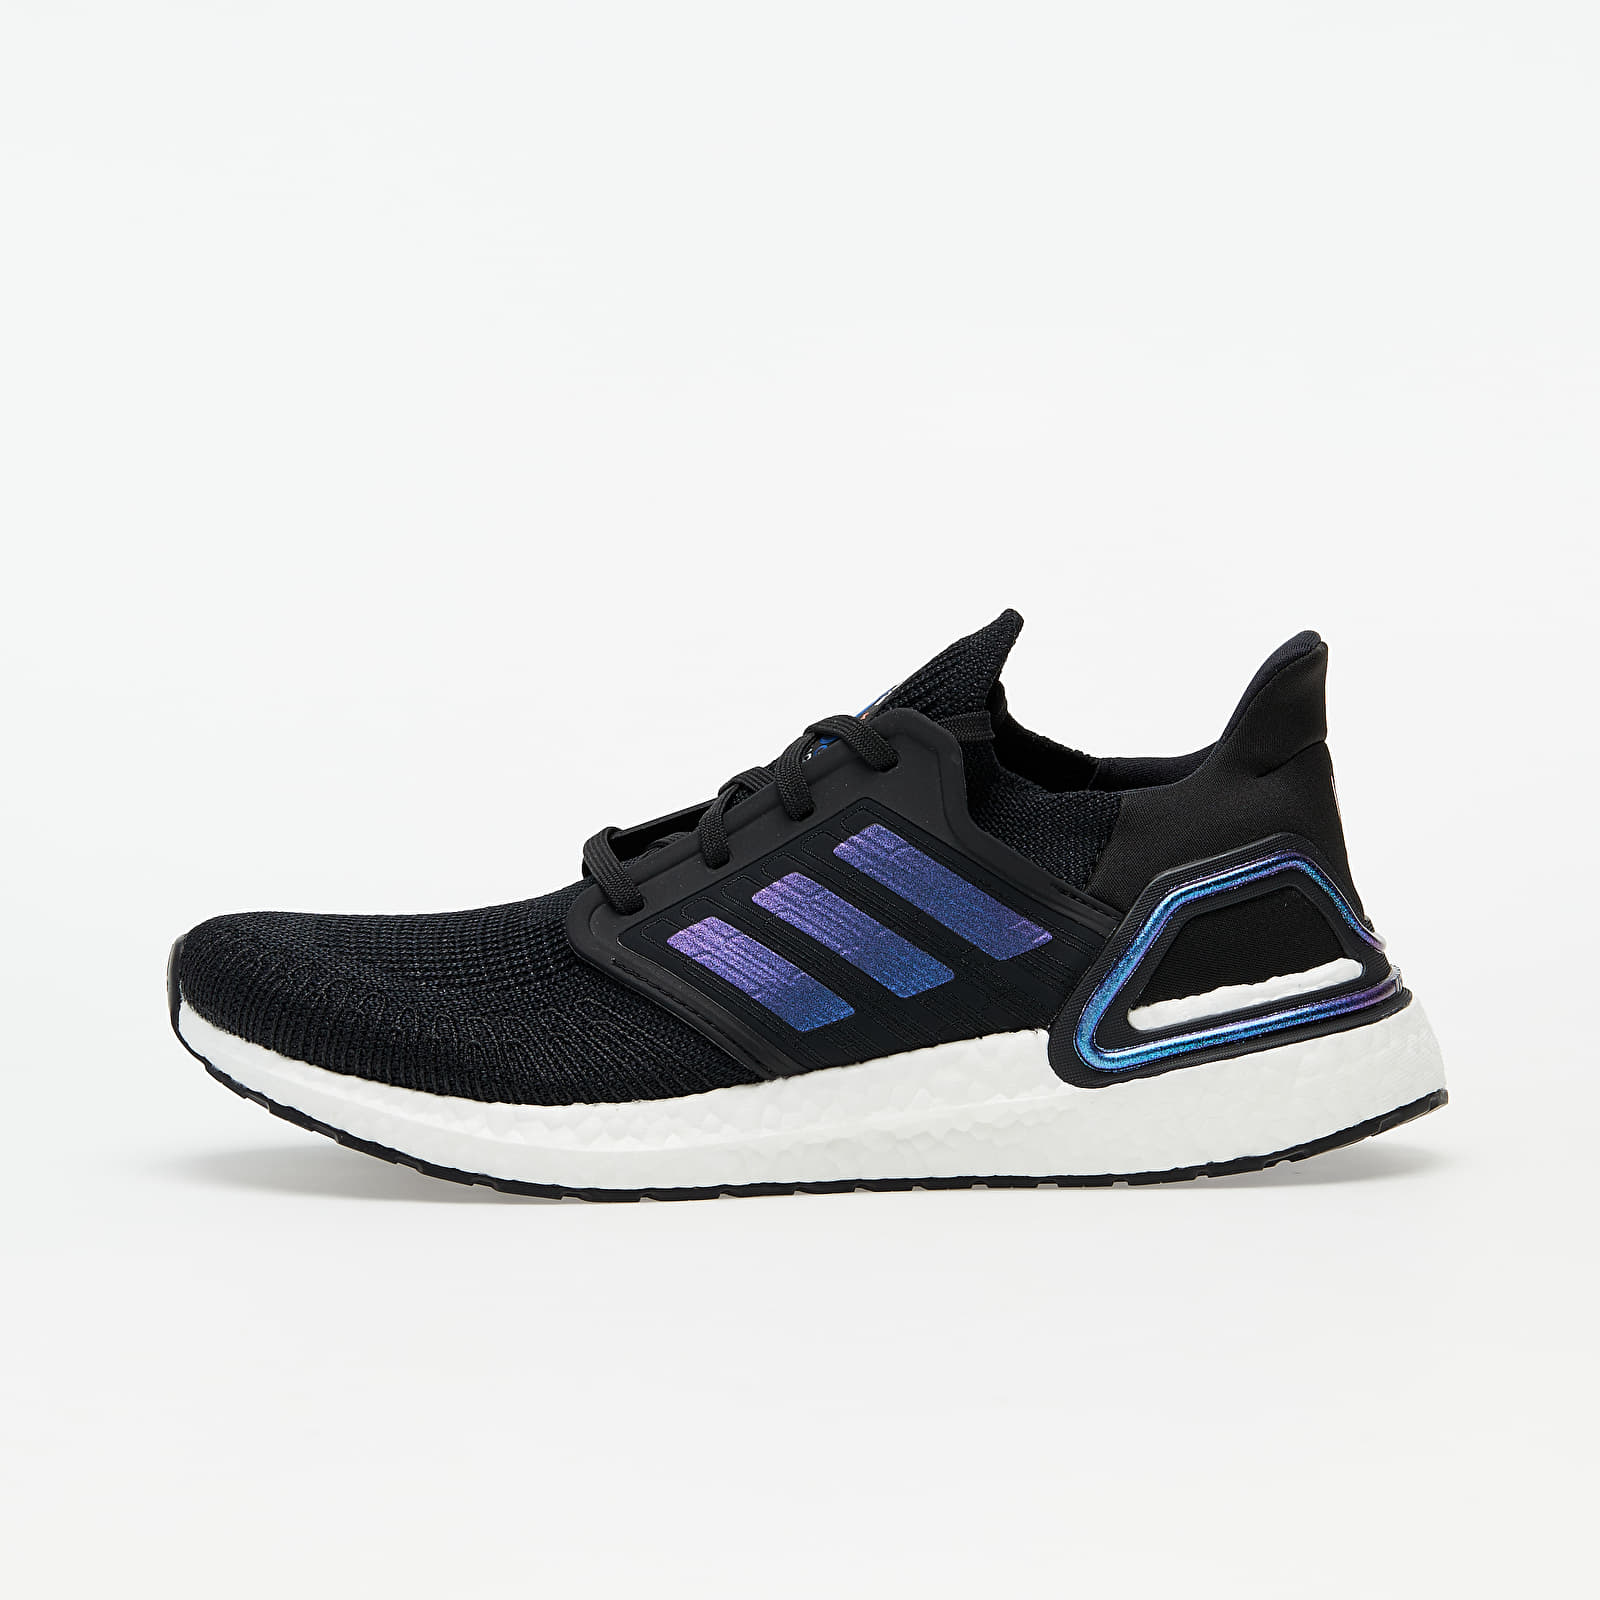 Men's shoes adidas UltraBOOST 20 Core Black/ Blue Vime/ Ftw White